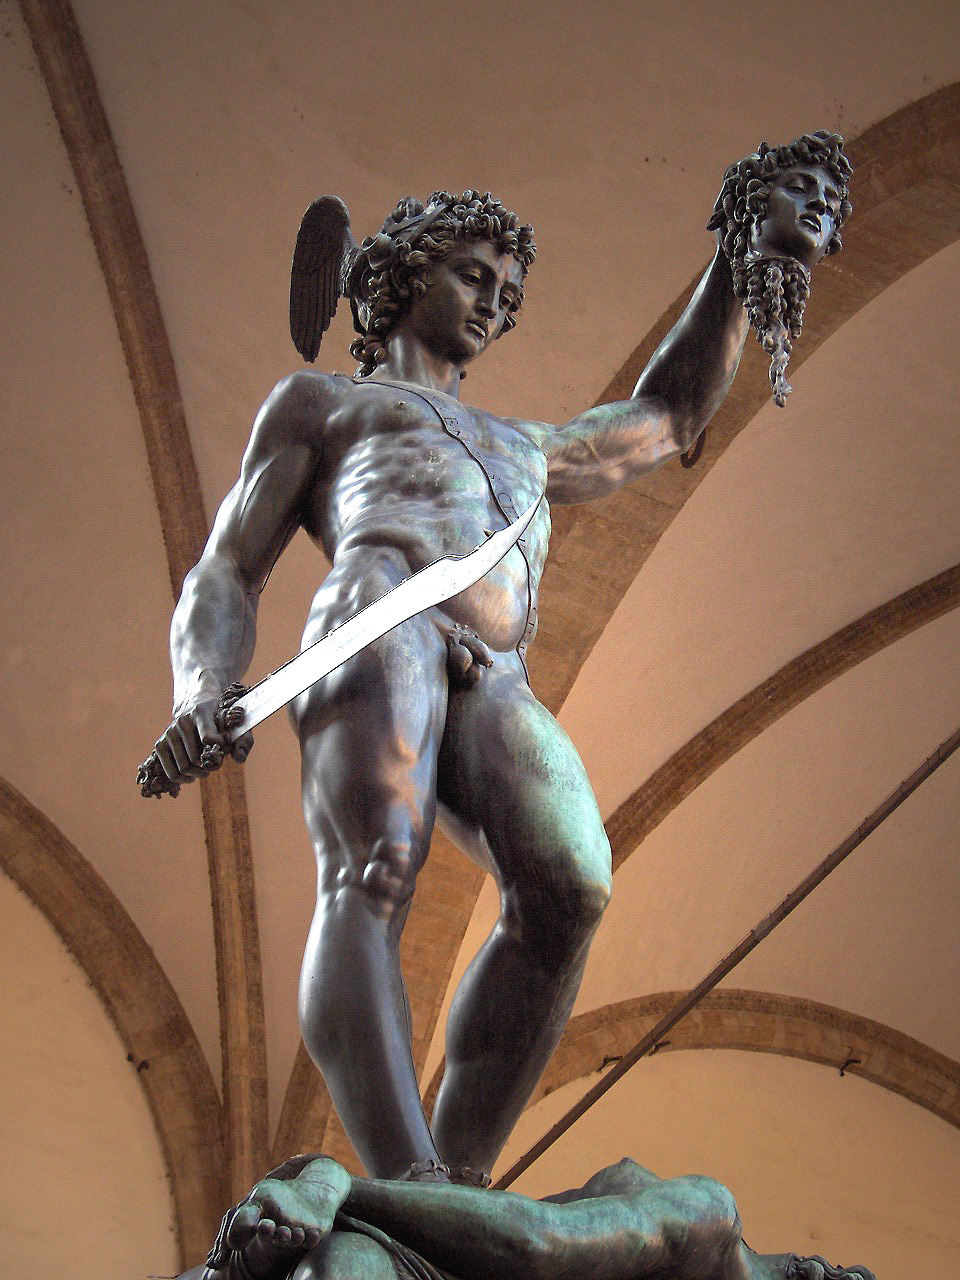 Perseus with Medusa's head